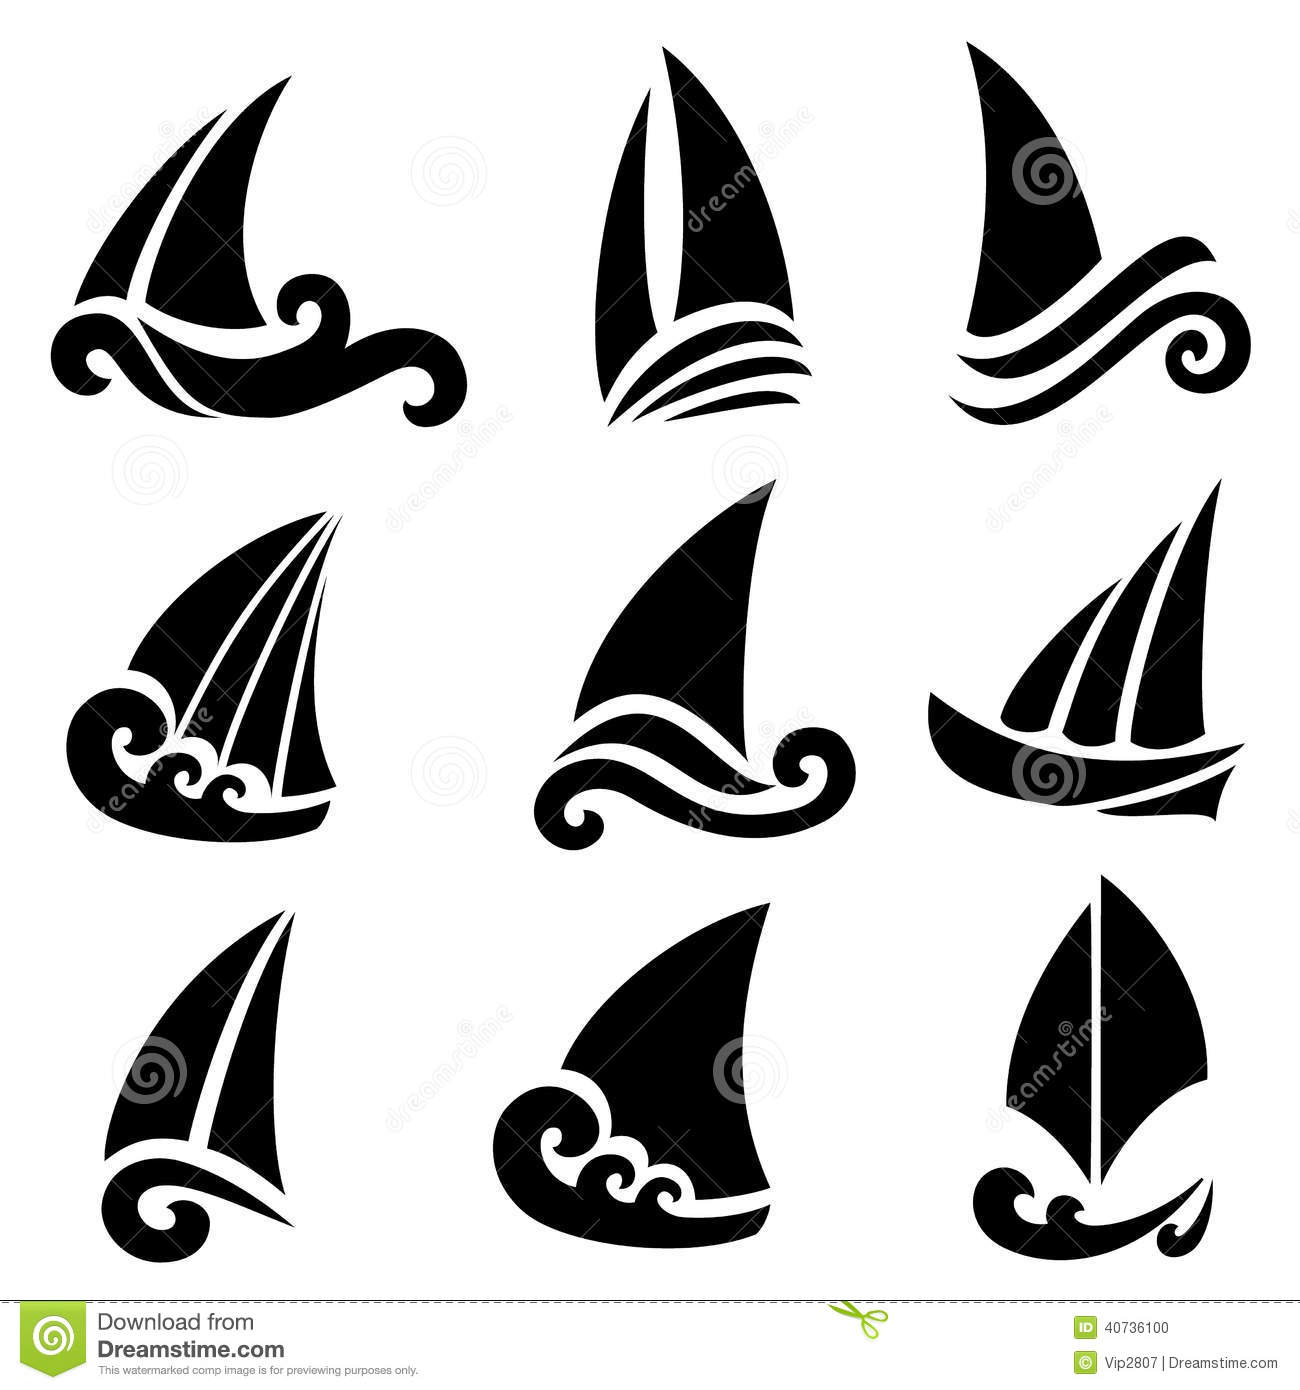 The Stylized Ship Boat Stock Vector Illustration Of Icon